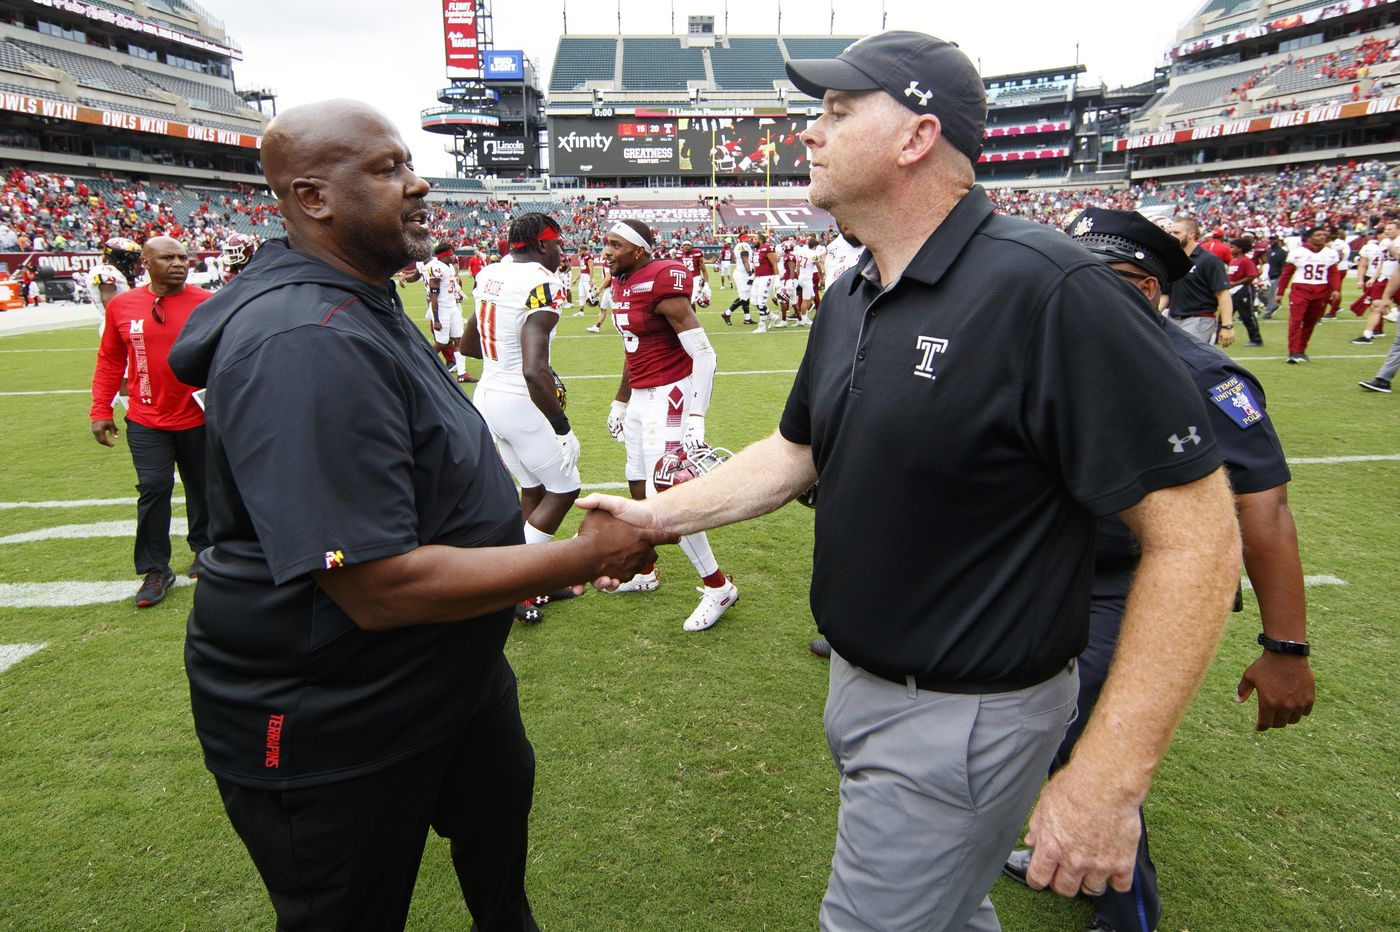 Temple tough? Rod Carey should have let players talk after lopsided loss.   Mike Jensen